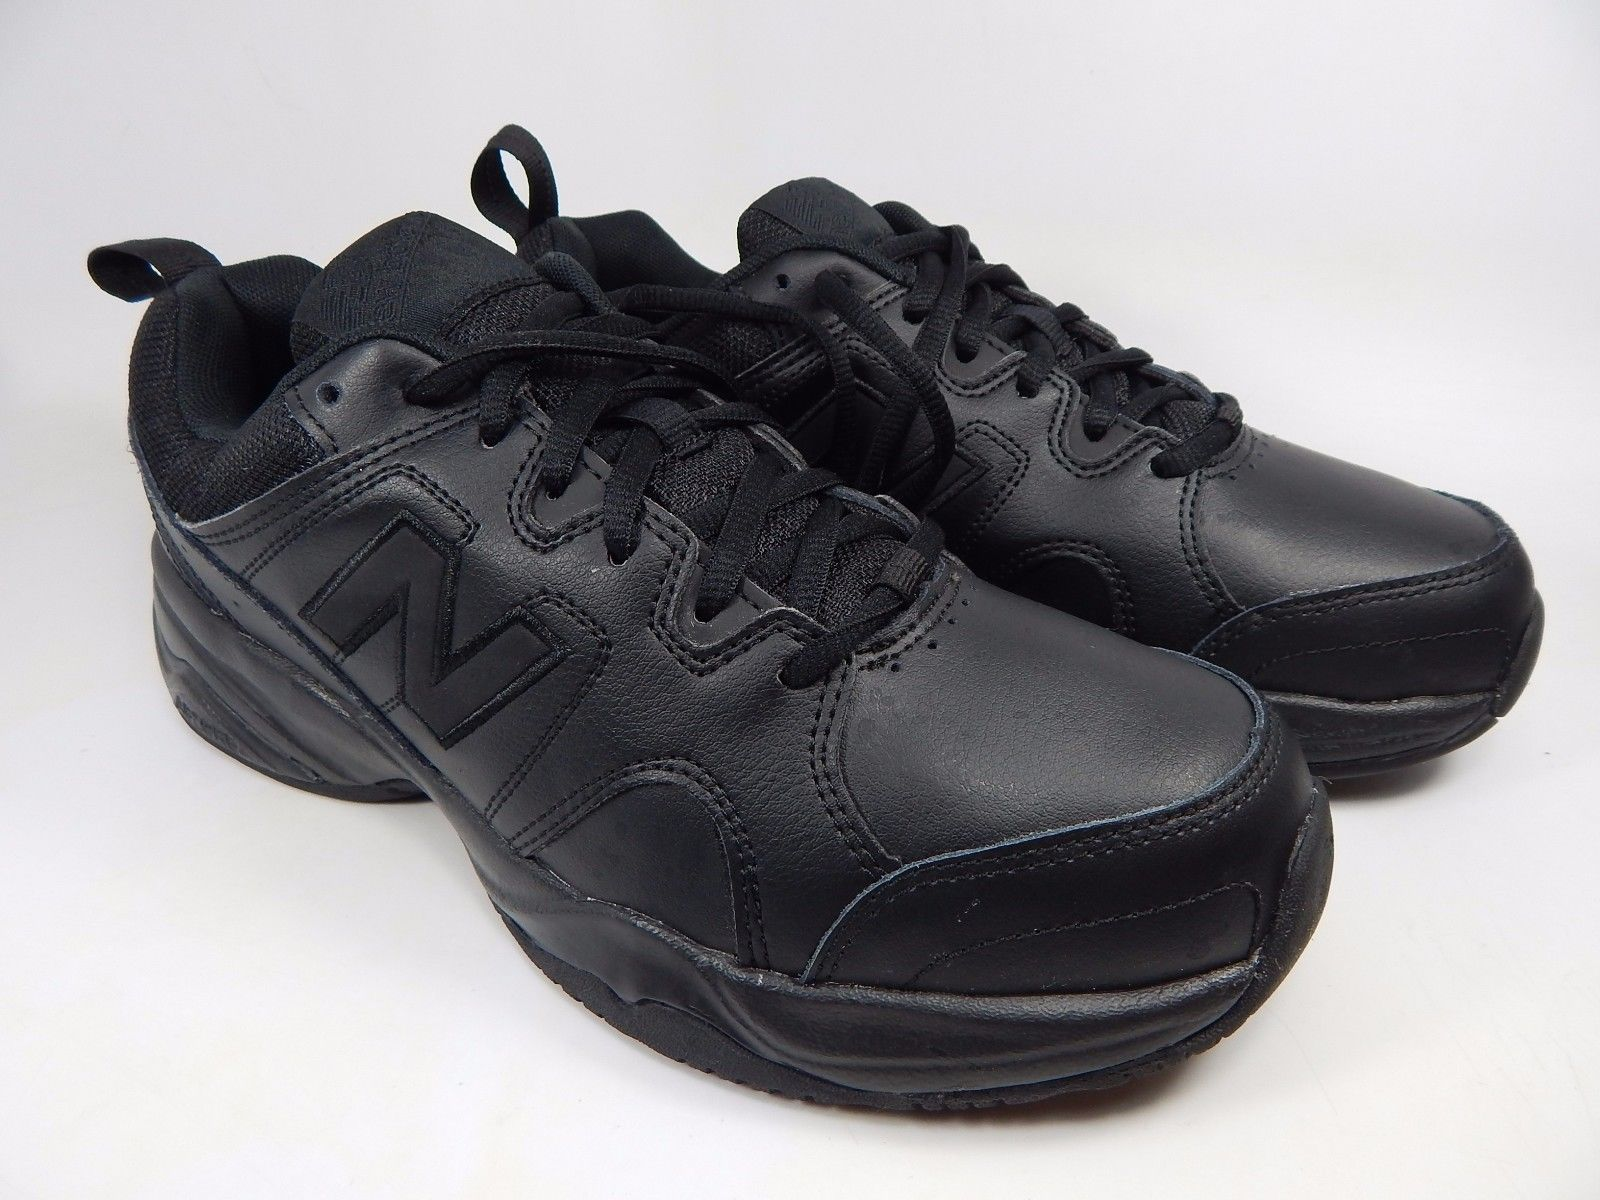 New Balance 609 v3 Men's training Shoes Size US 8 M (D) EU 41.5 Black MX609BX3